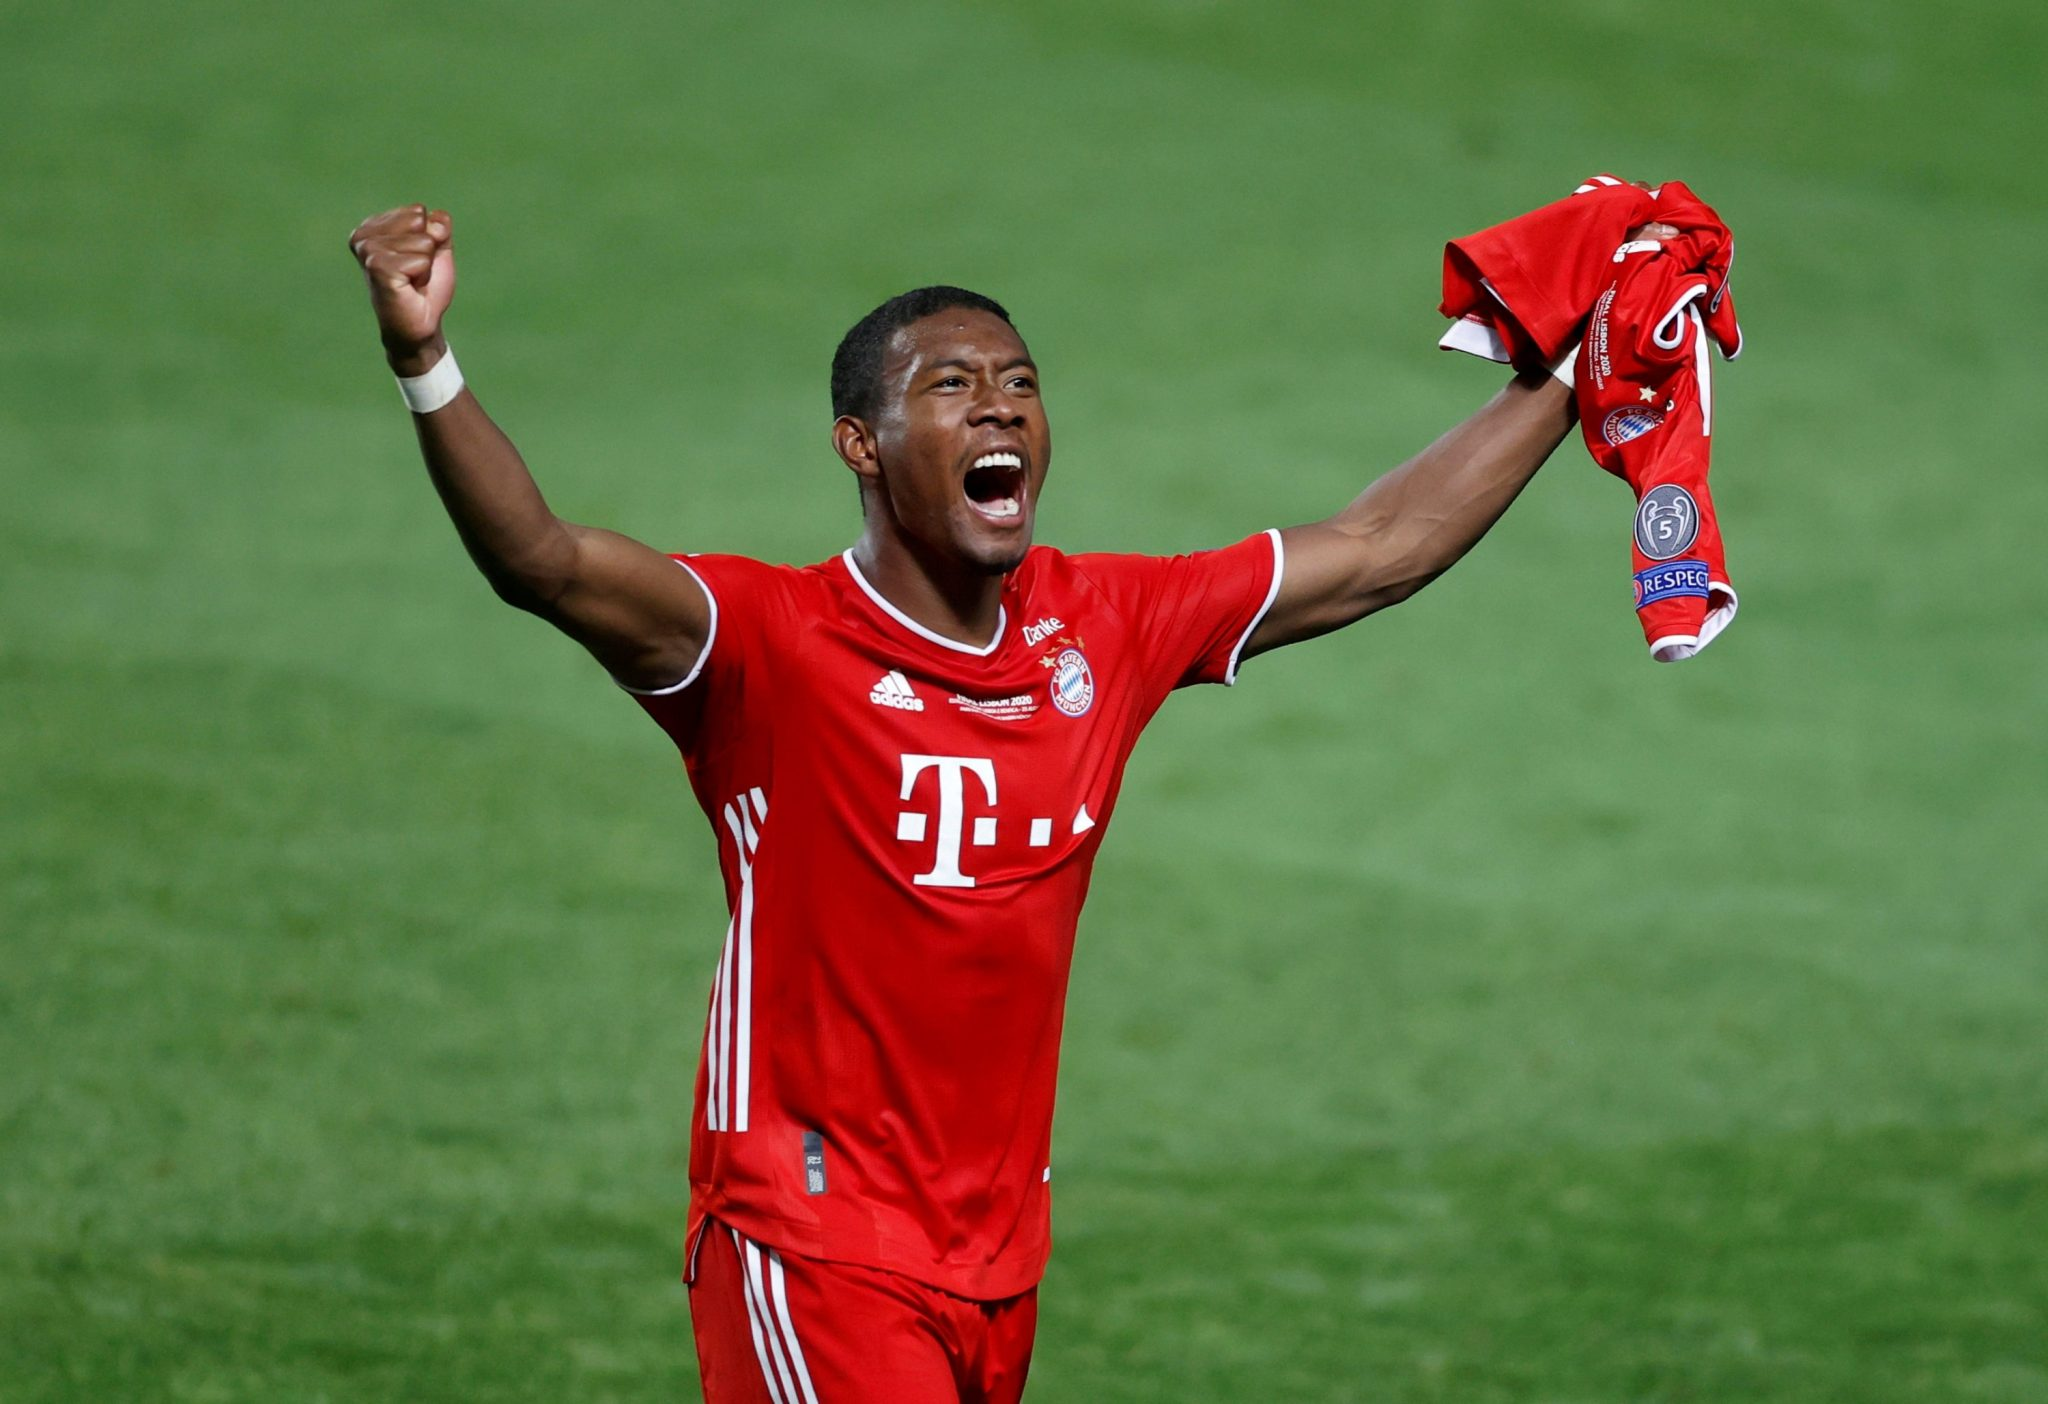 OFFICIAL: Real Madrid announces David Alaba as their first ...